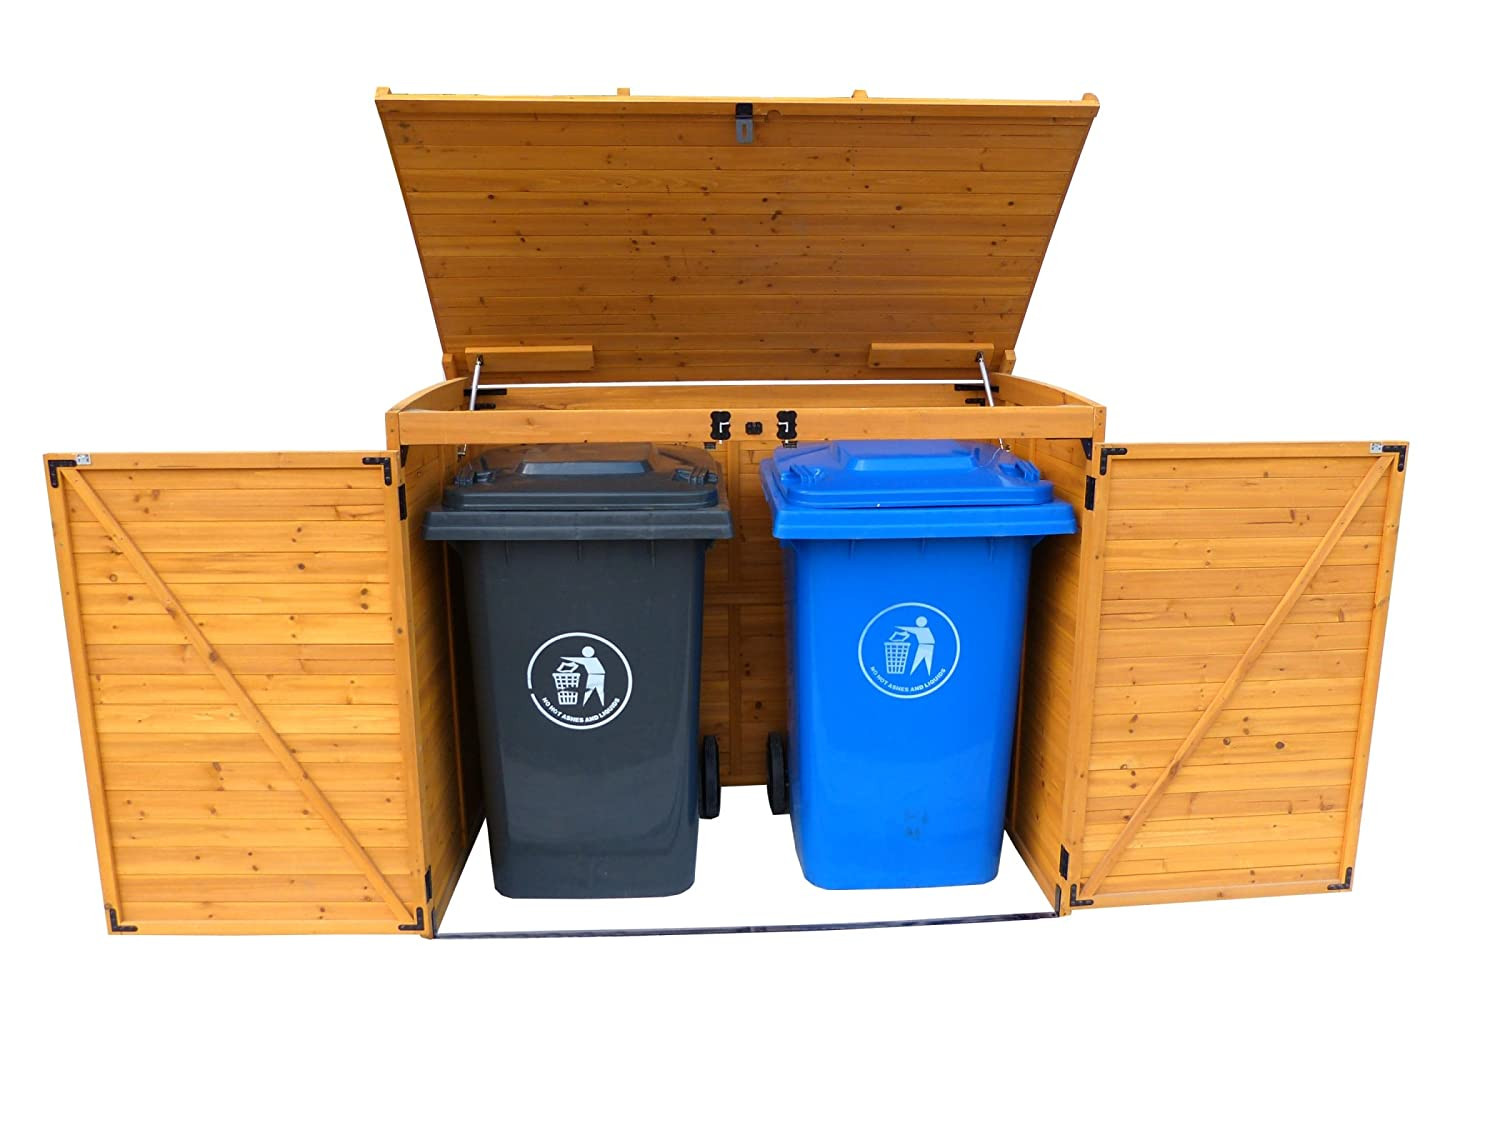 Attractive Garbage Storage #8 - Amazon.com : Leisure Season Large Horizontal Refuse Storage Shed : Garden U0026  Outdoor